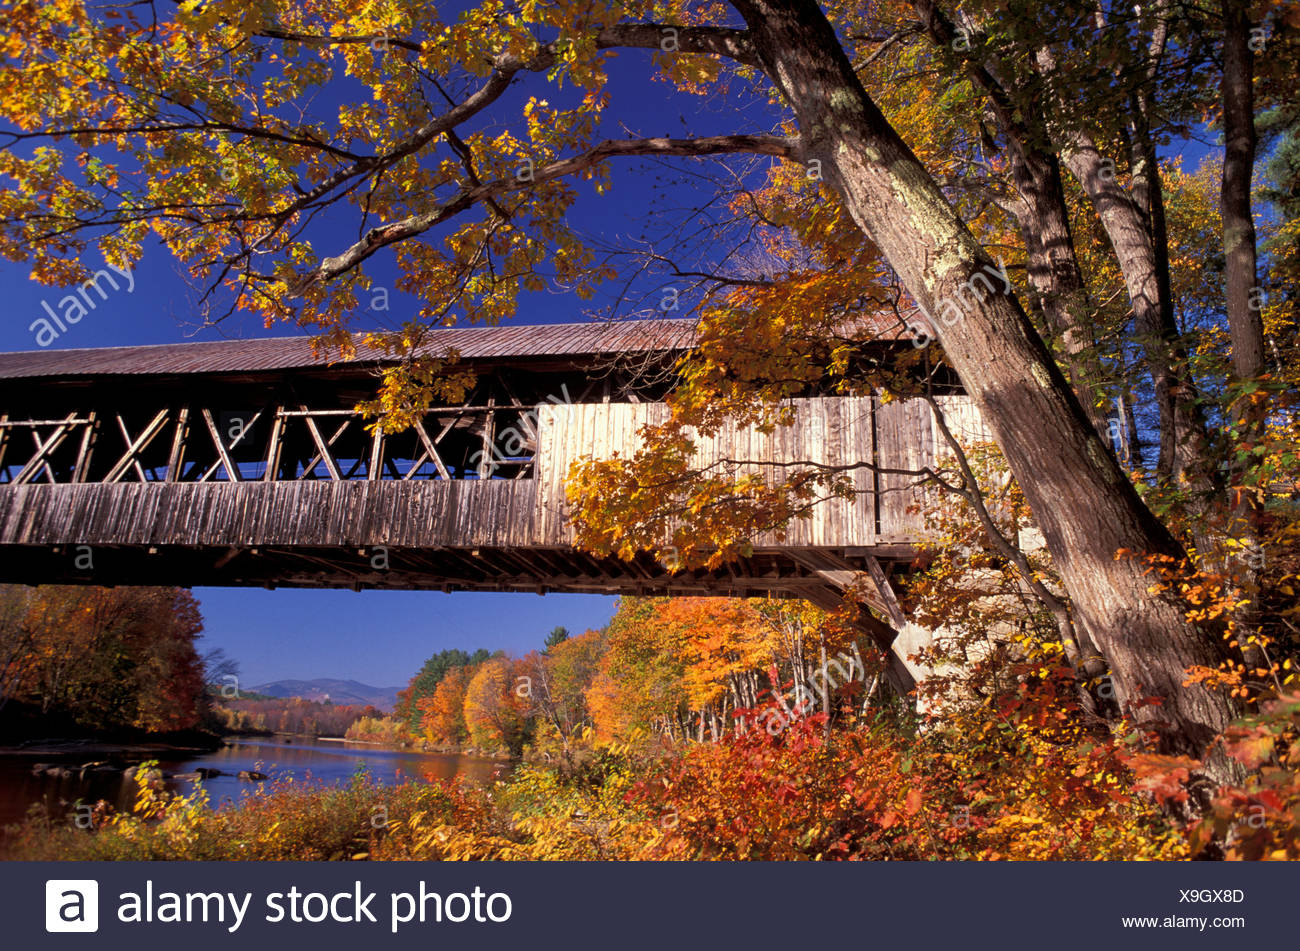 Covered Bridge Nr. 41 New Hampshire Indian Summer USA America United States North America near Woodstock - Stock Image